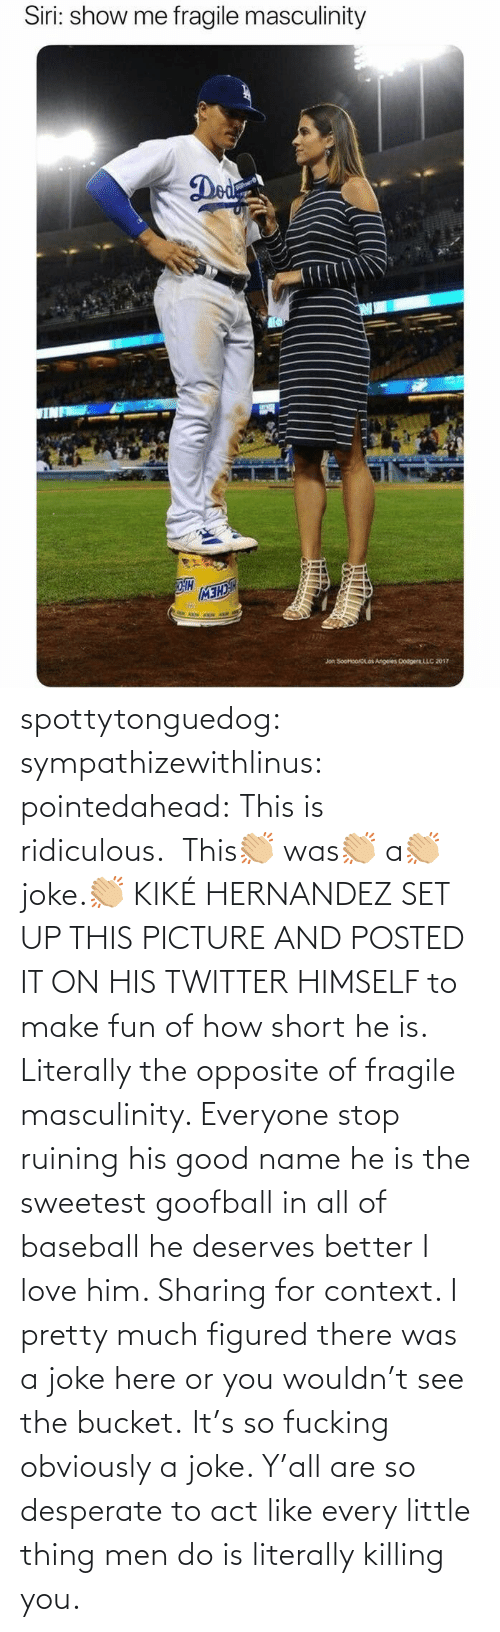 Deserves: spottytonguedog:  sympathizewithlinus:   pointedahead: This is ridiculous.  This👏🏼 was👏🏼 a👏🏼 joke.👏🏼 KIKÉ HERNANDEZ SET UP THIS PICTURE AND POSTED IT ON HIS TWITTER HIMSELF to make fun of how short he is. Literally the opposite of fragile masculinity. Everyone stop ruining his good name he is the sweetest goofball in all of baseball he deserves better I love him.    Sharing for context. I pretty much figured there was a joke here or you wouldn't see the bucket.    It's so fucking obviously a joke. Y'all are so desperate to act like every little thing men do is literally killing you.